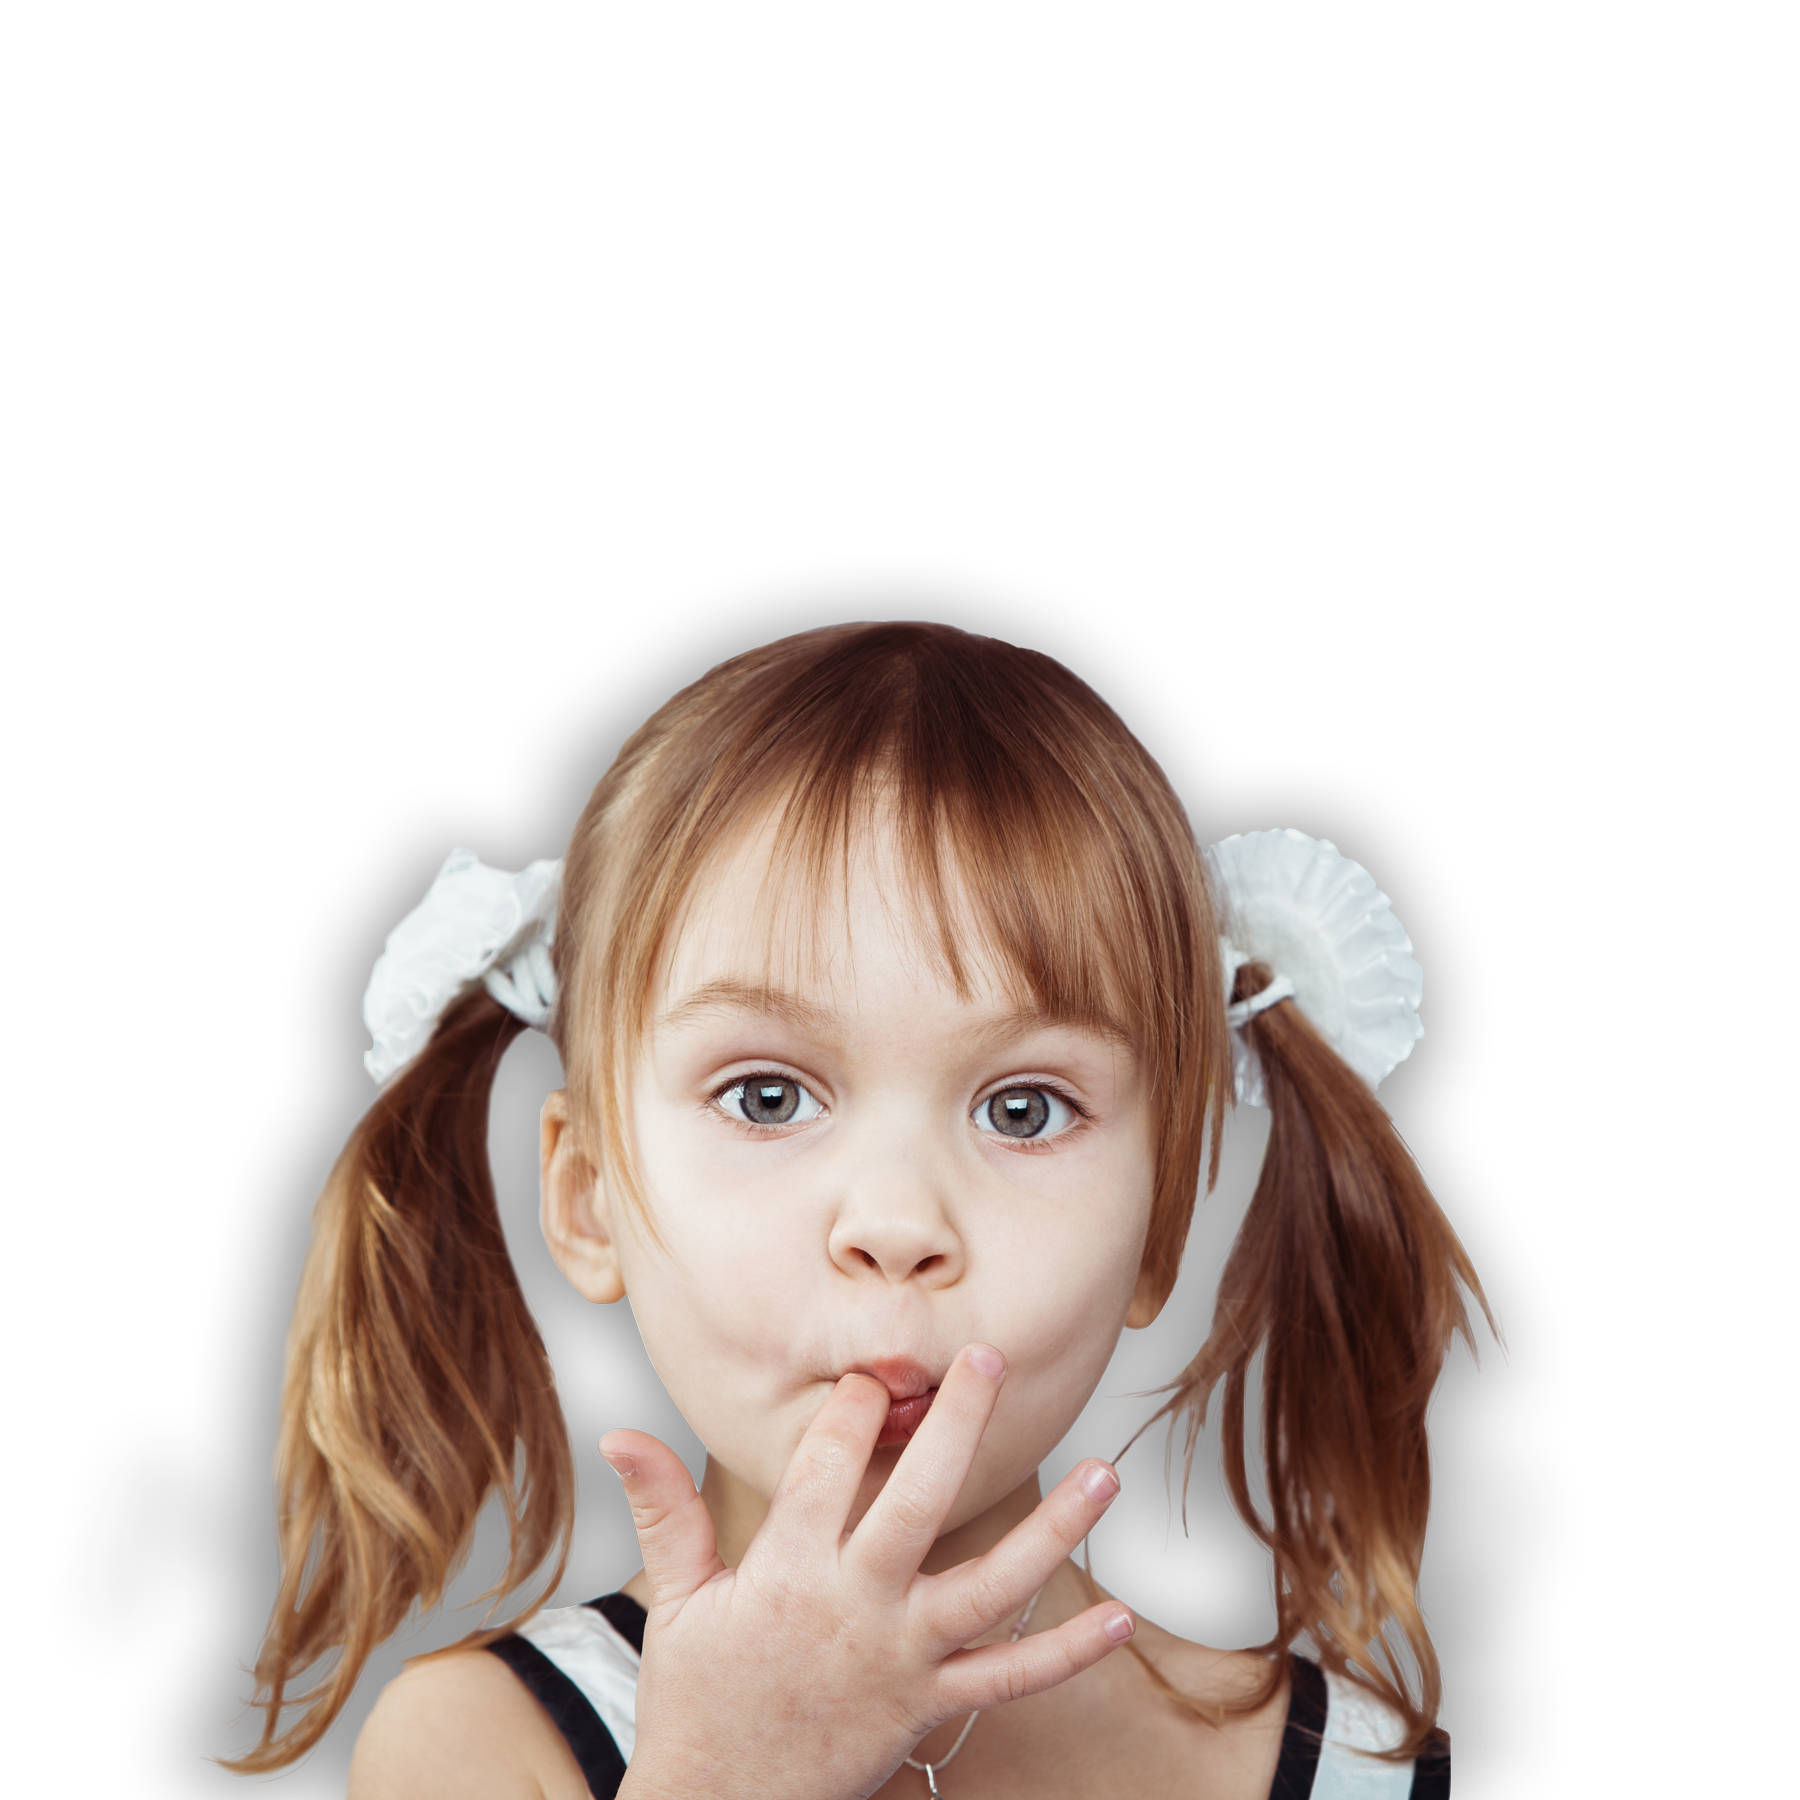 girl with pigtails licking her fingers